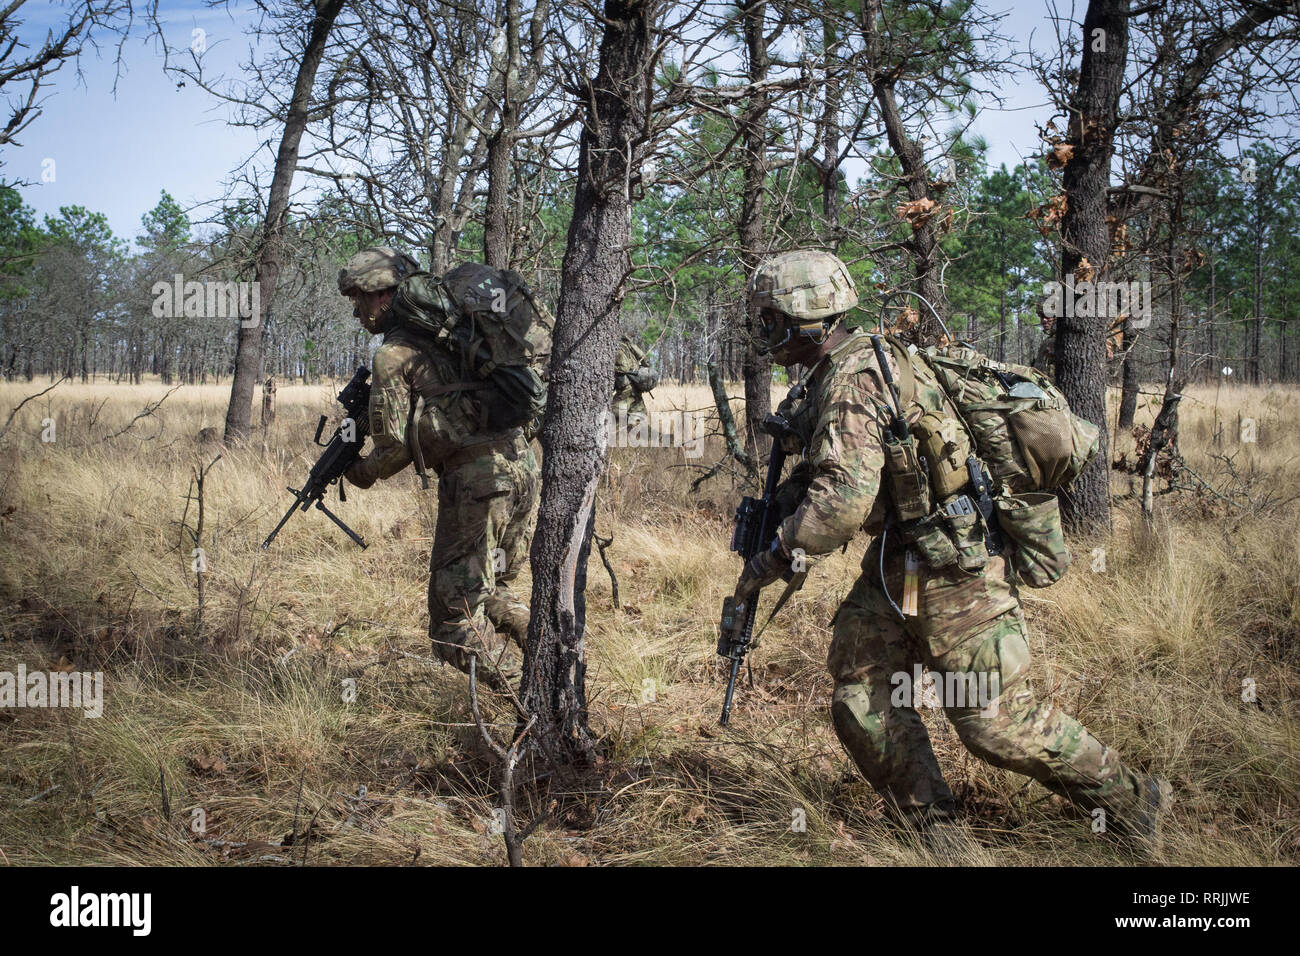 Paratroopers from Company C, 2nd Battalion, 505th Parachute Infantry Regiment, 3rd Brigade Combat Team, 82nd Airborne Division bound between cover during the Company's live-fire exercise held Sunday, February 24 on Fort Bragg, North Carolina. Stock Photo